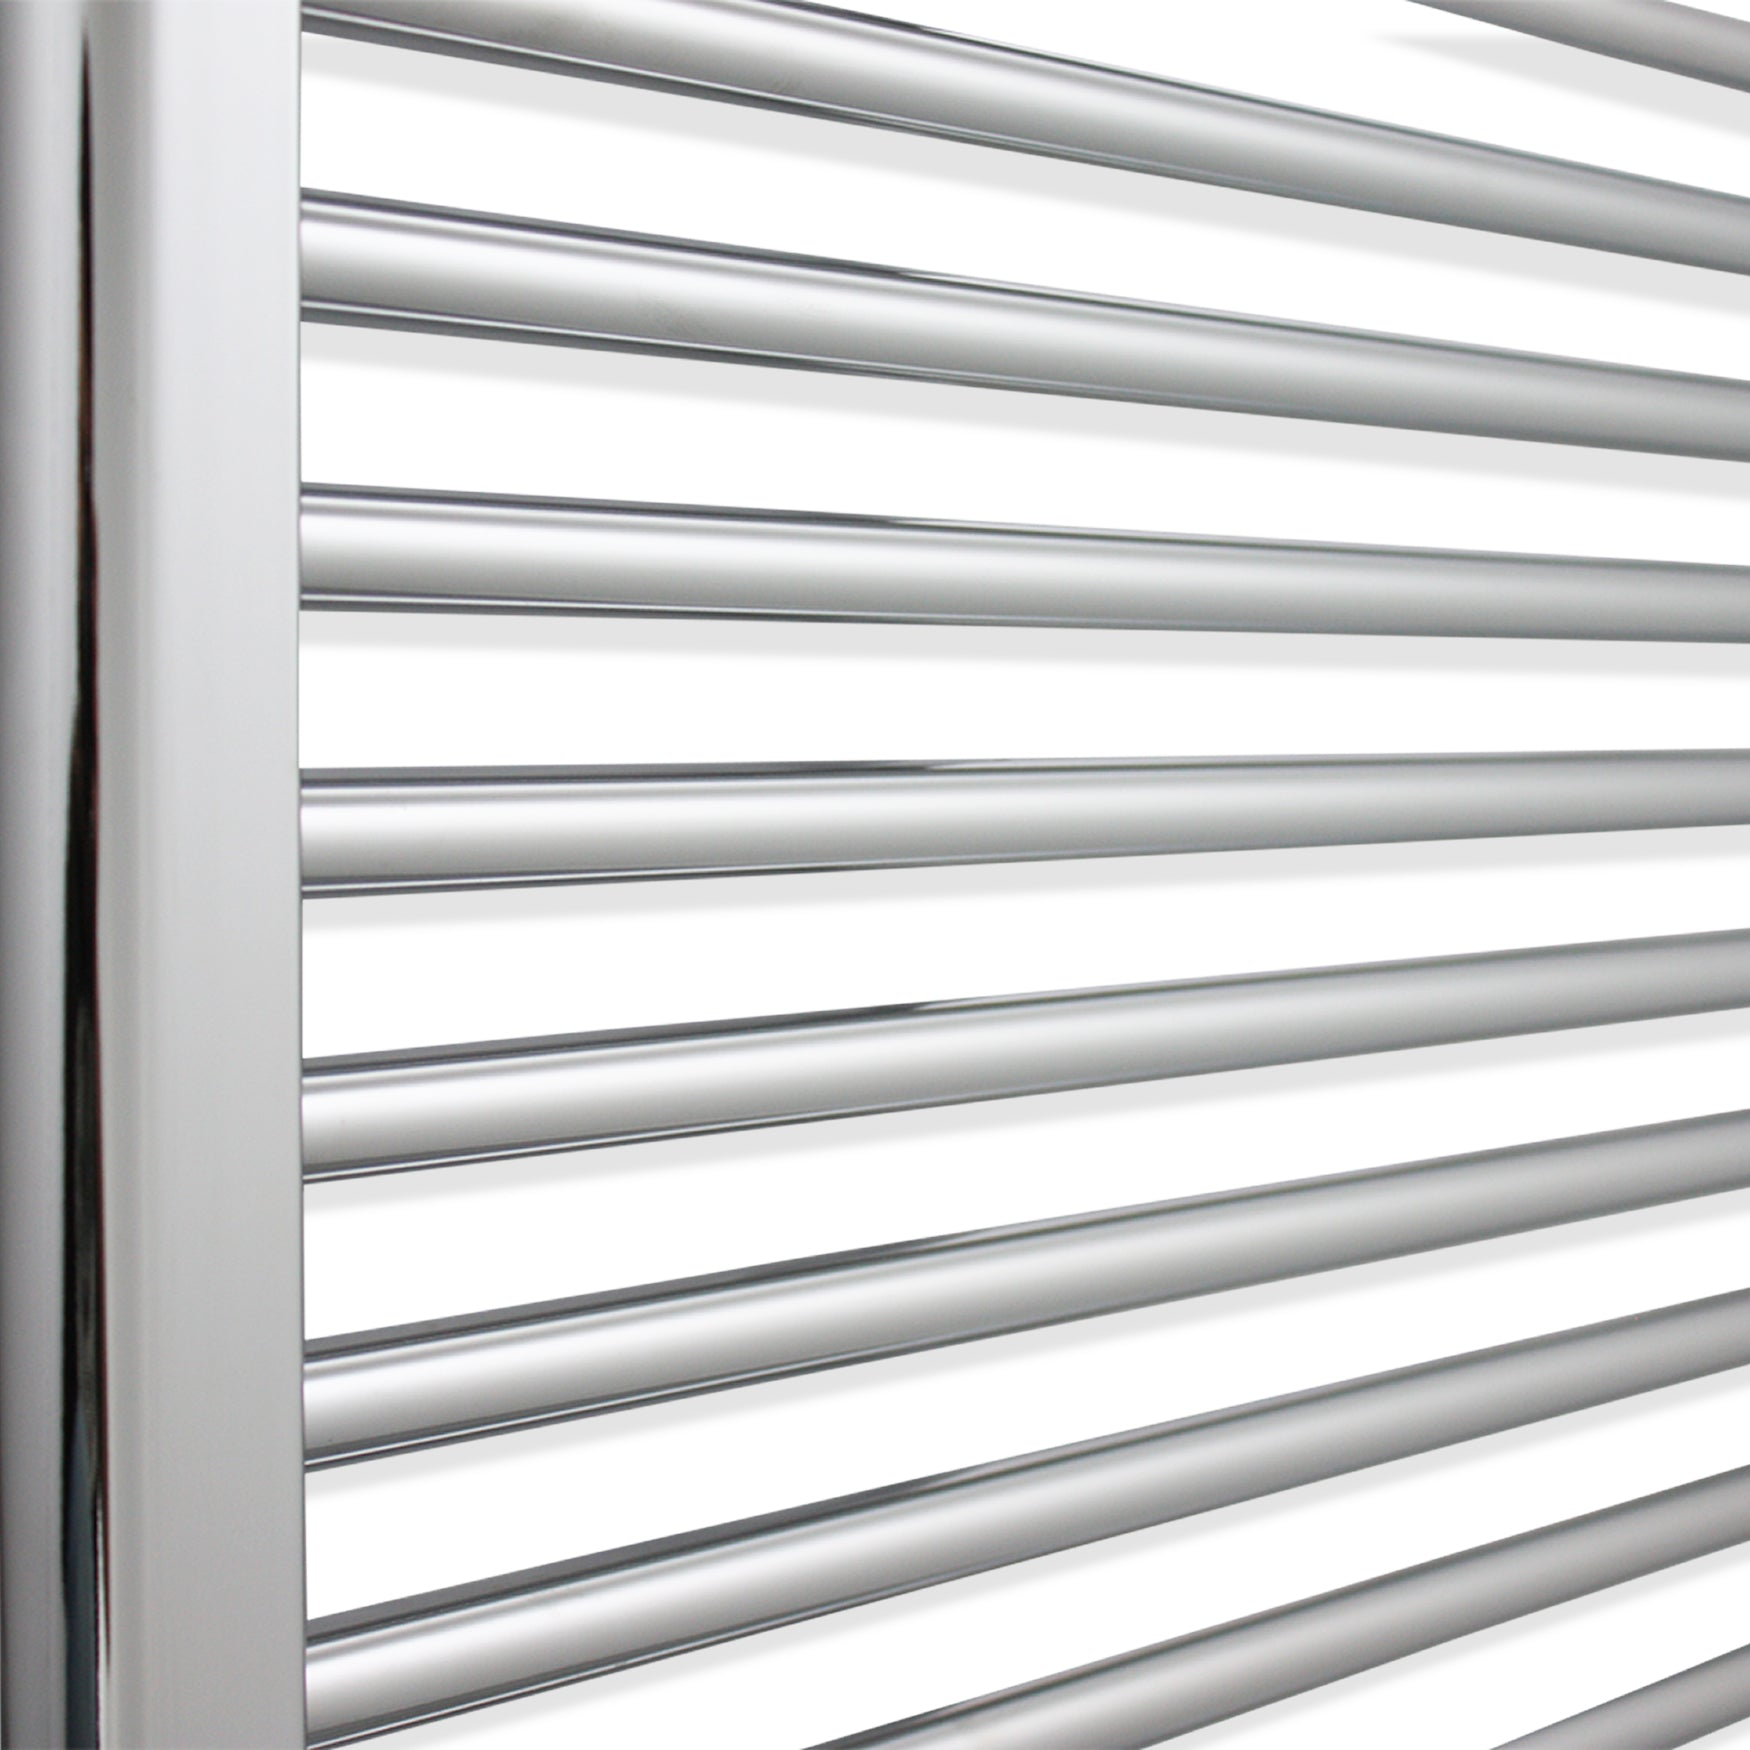 300mm Wide 600mm High Flat Chrome Heated Towel Rail Radiator